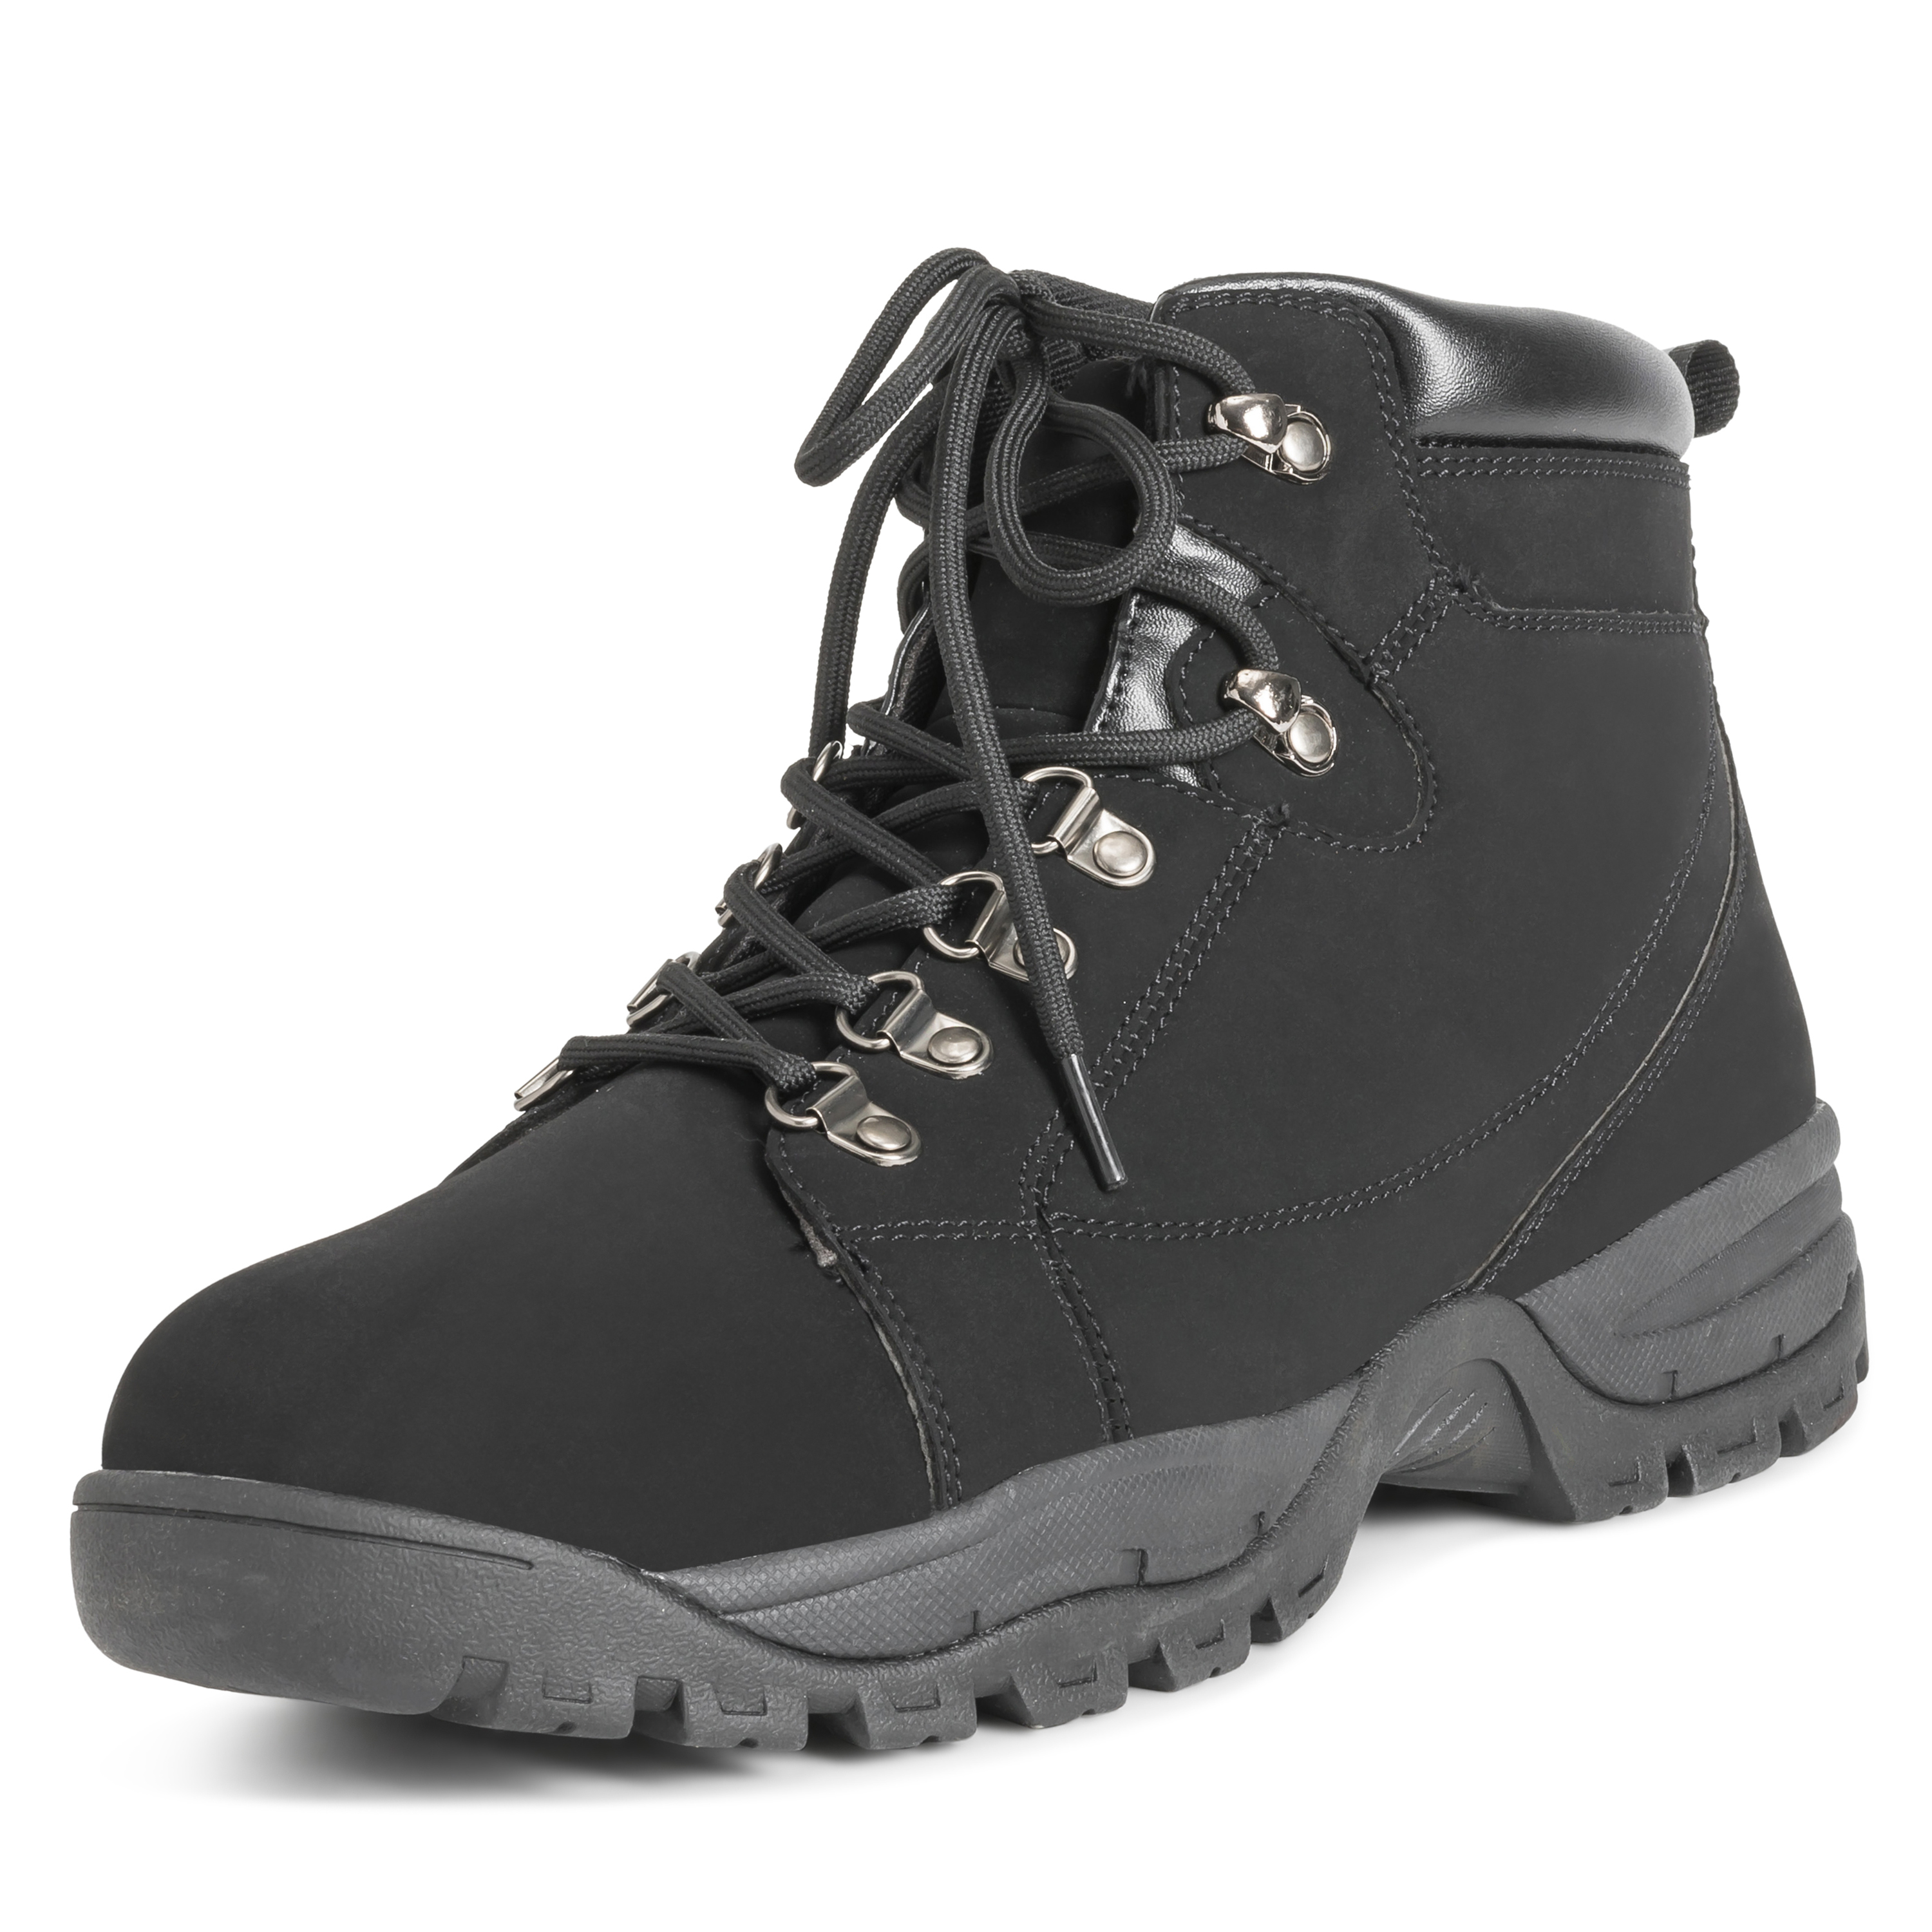 a142b77f00b5 Mens Hiker Safety Durable Rubber Sole Work Leather Steel Toe Cap Boots US  7-15